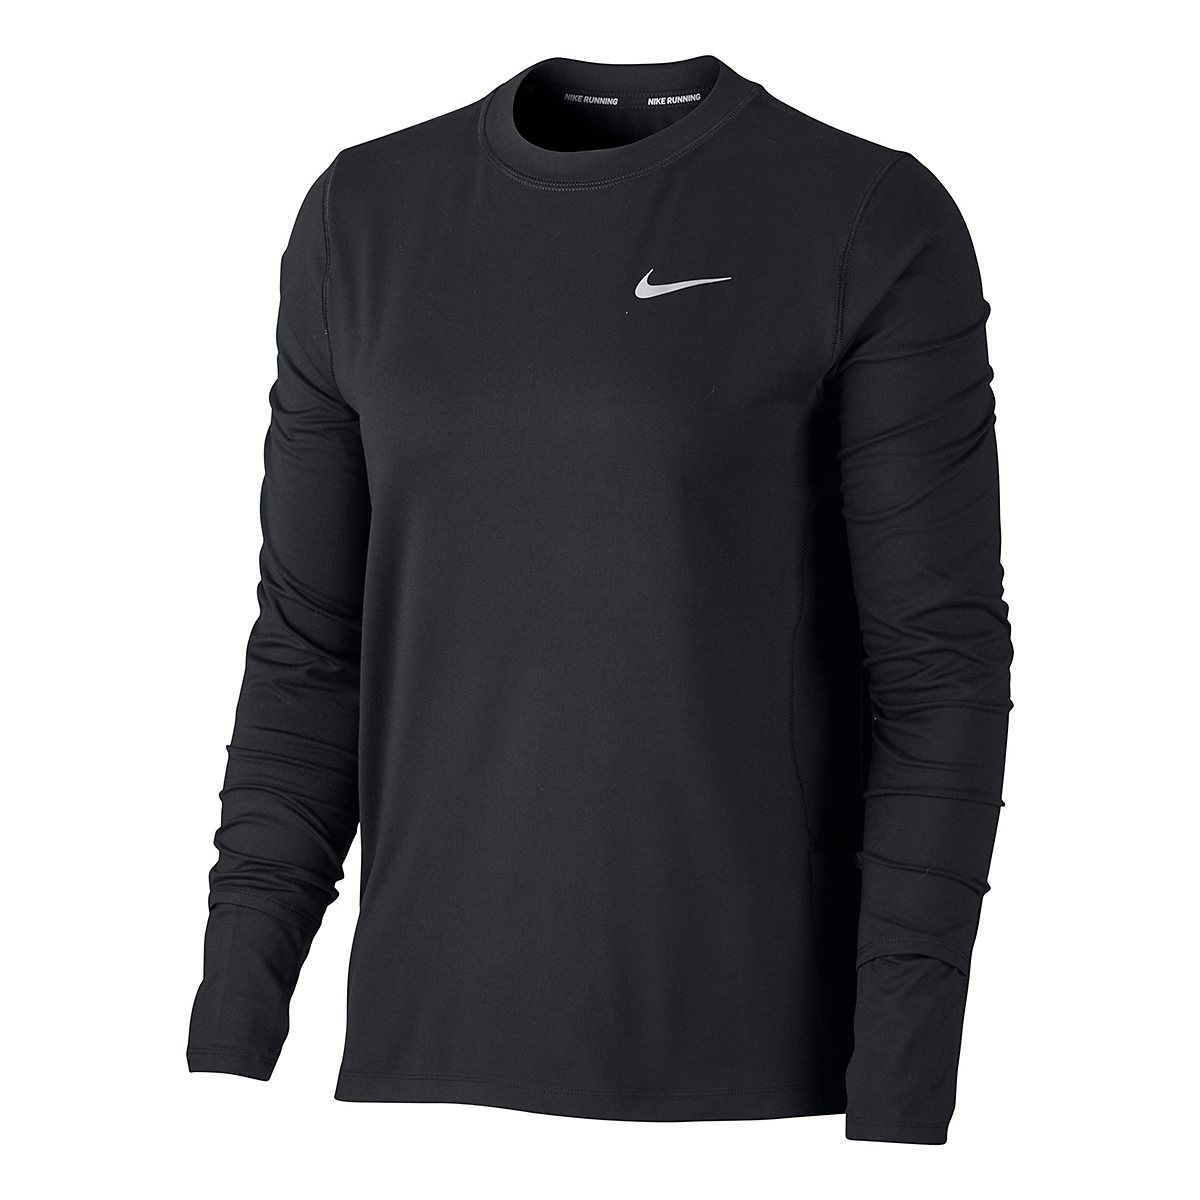 Women's Nike Element Crew Long Sleeve - Color: Black/Reflective Silver - Size: XS, Black/Reflective Silver, large, image 2